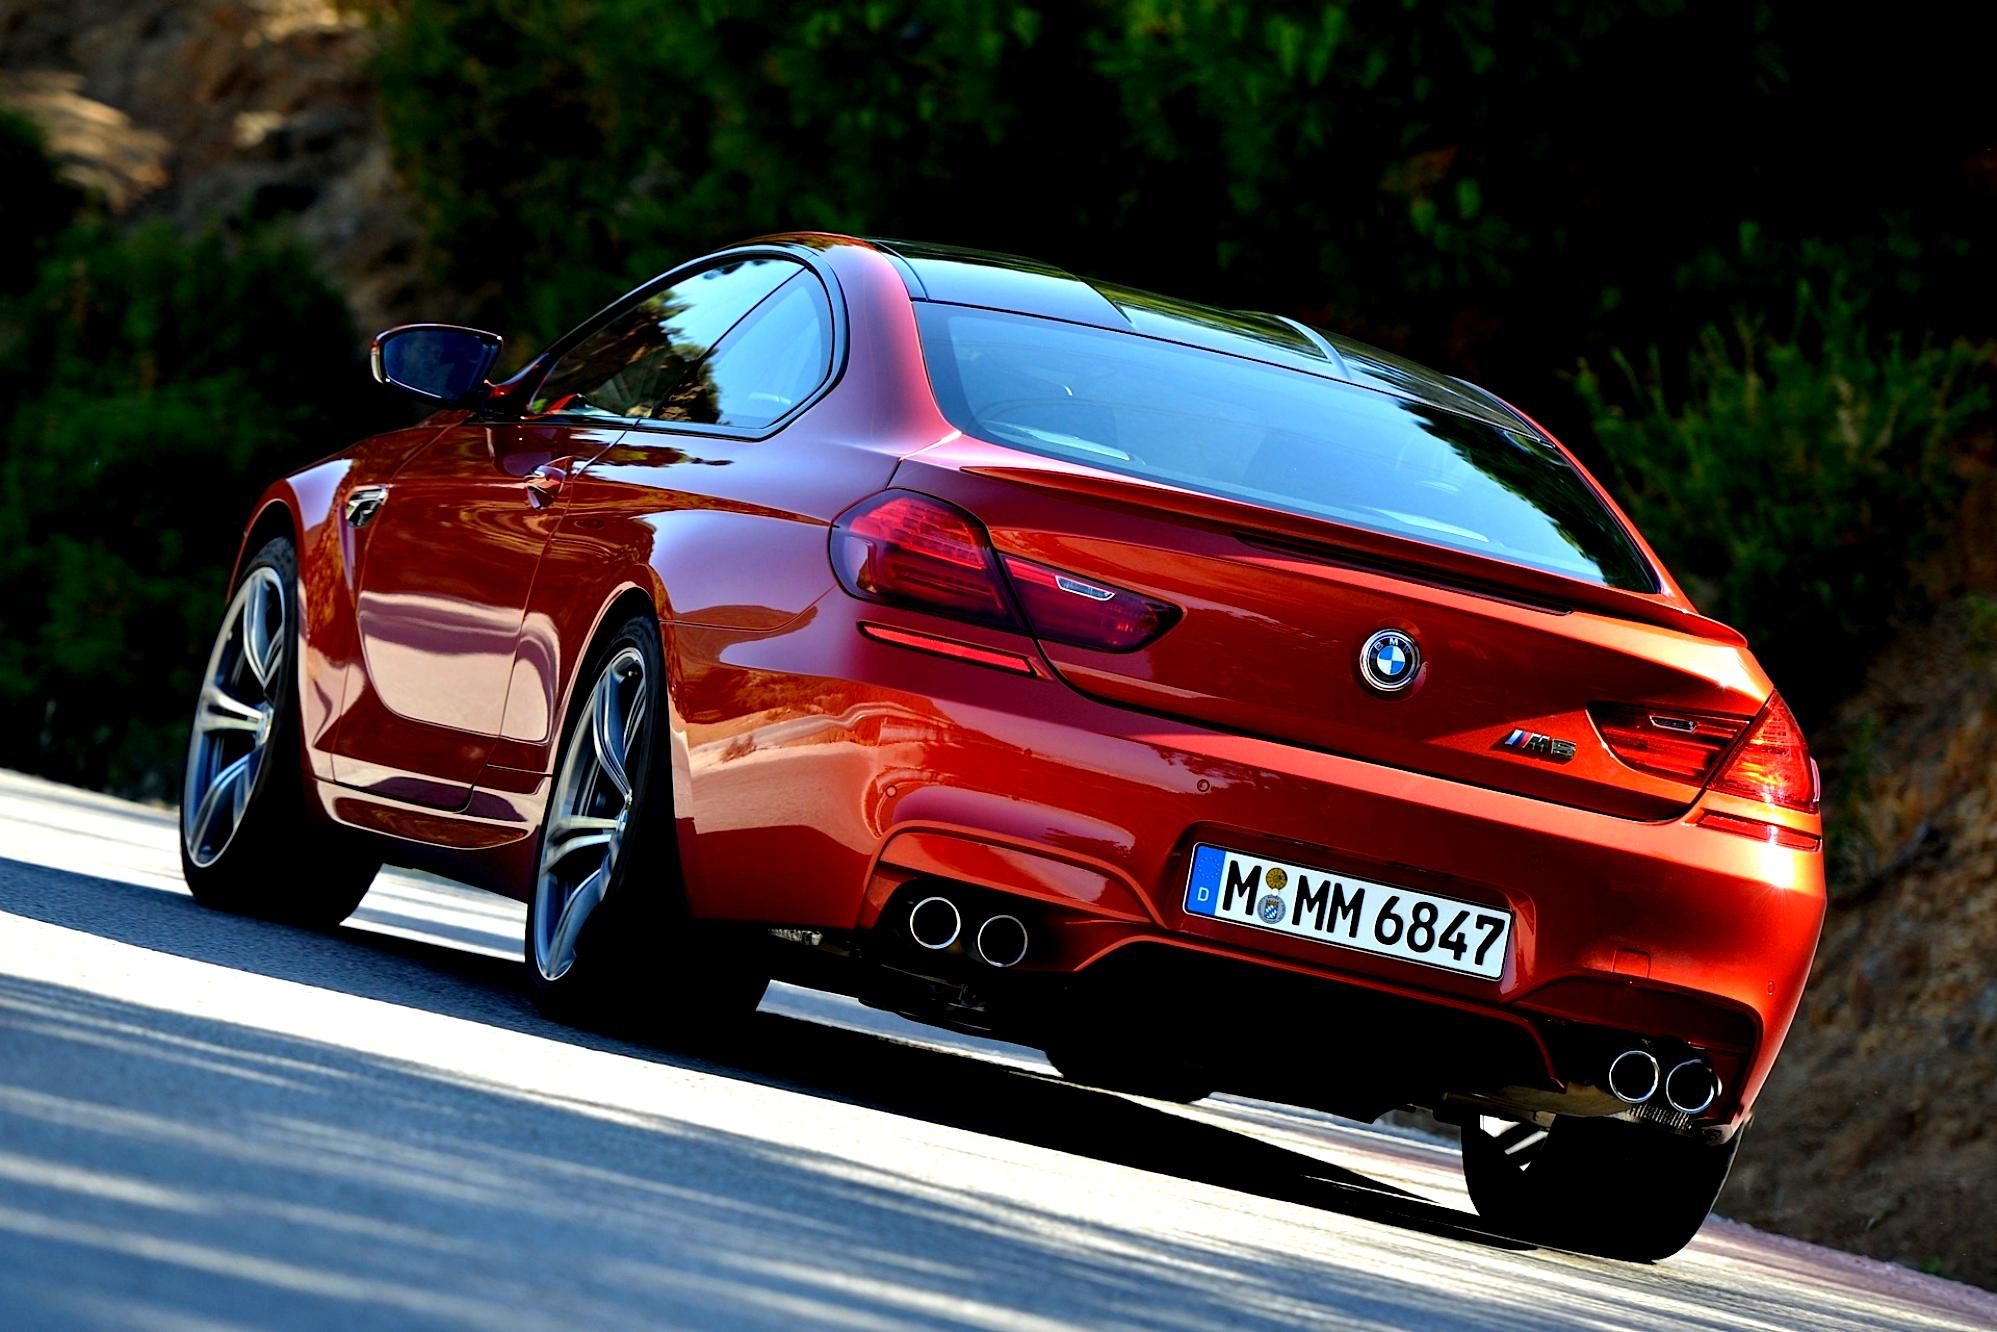 BMW M6 Coupe F13 2012 #66